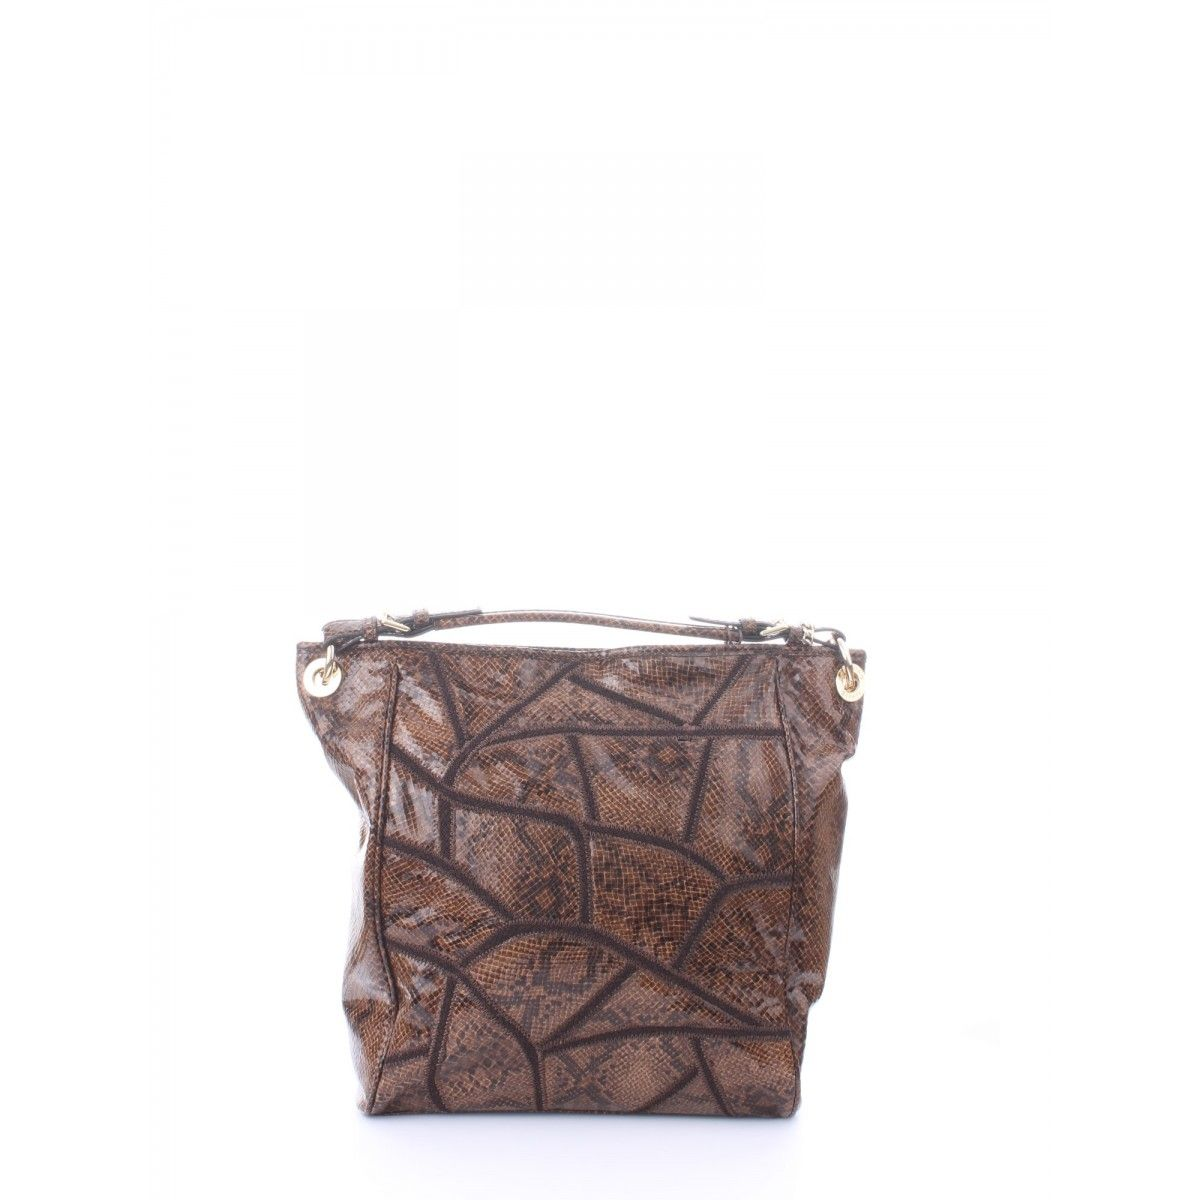 Scervino street - Amaranthe l hobo bag 018 tan SCBPU0000012